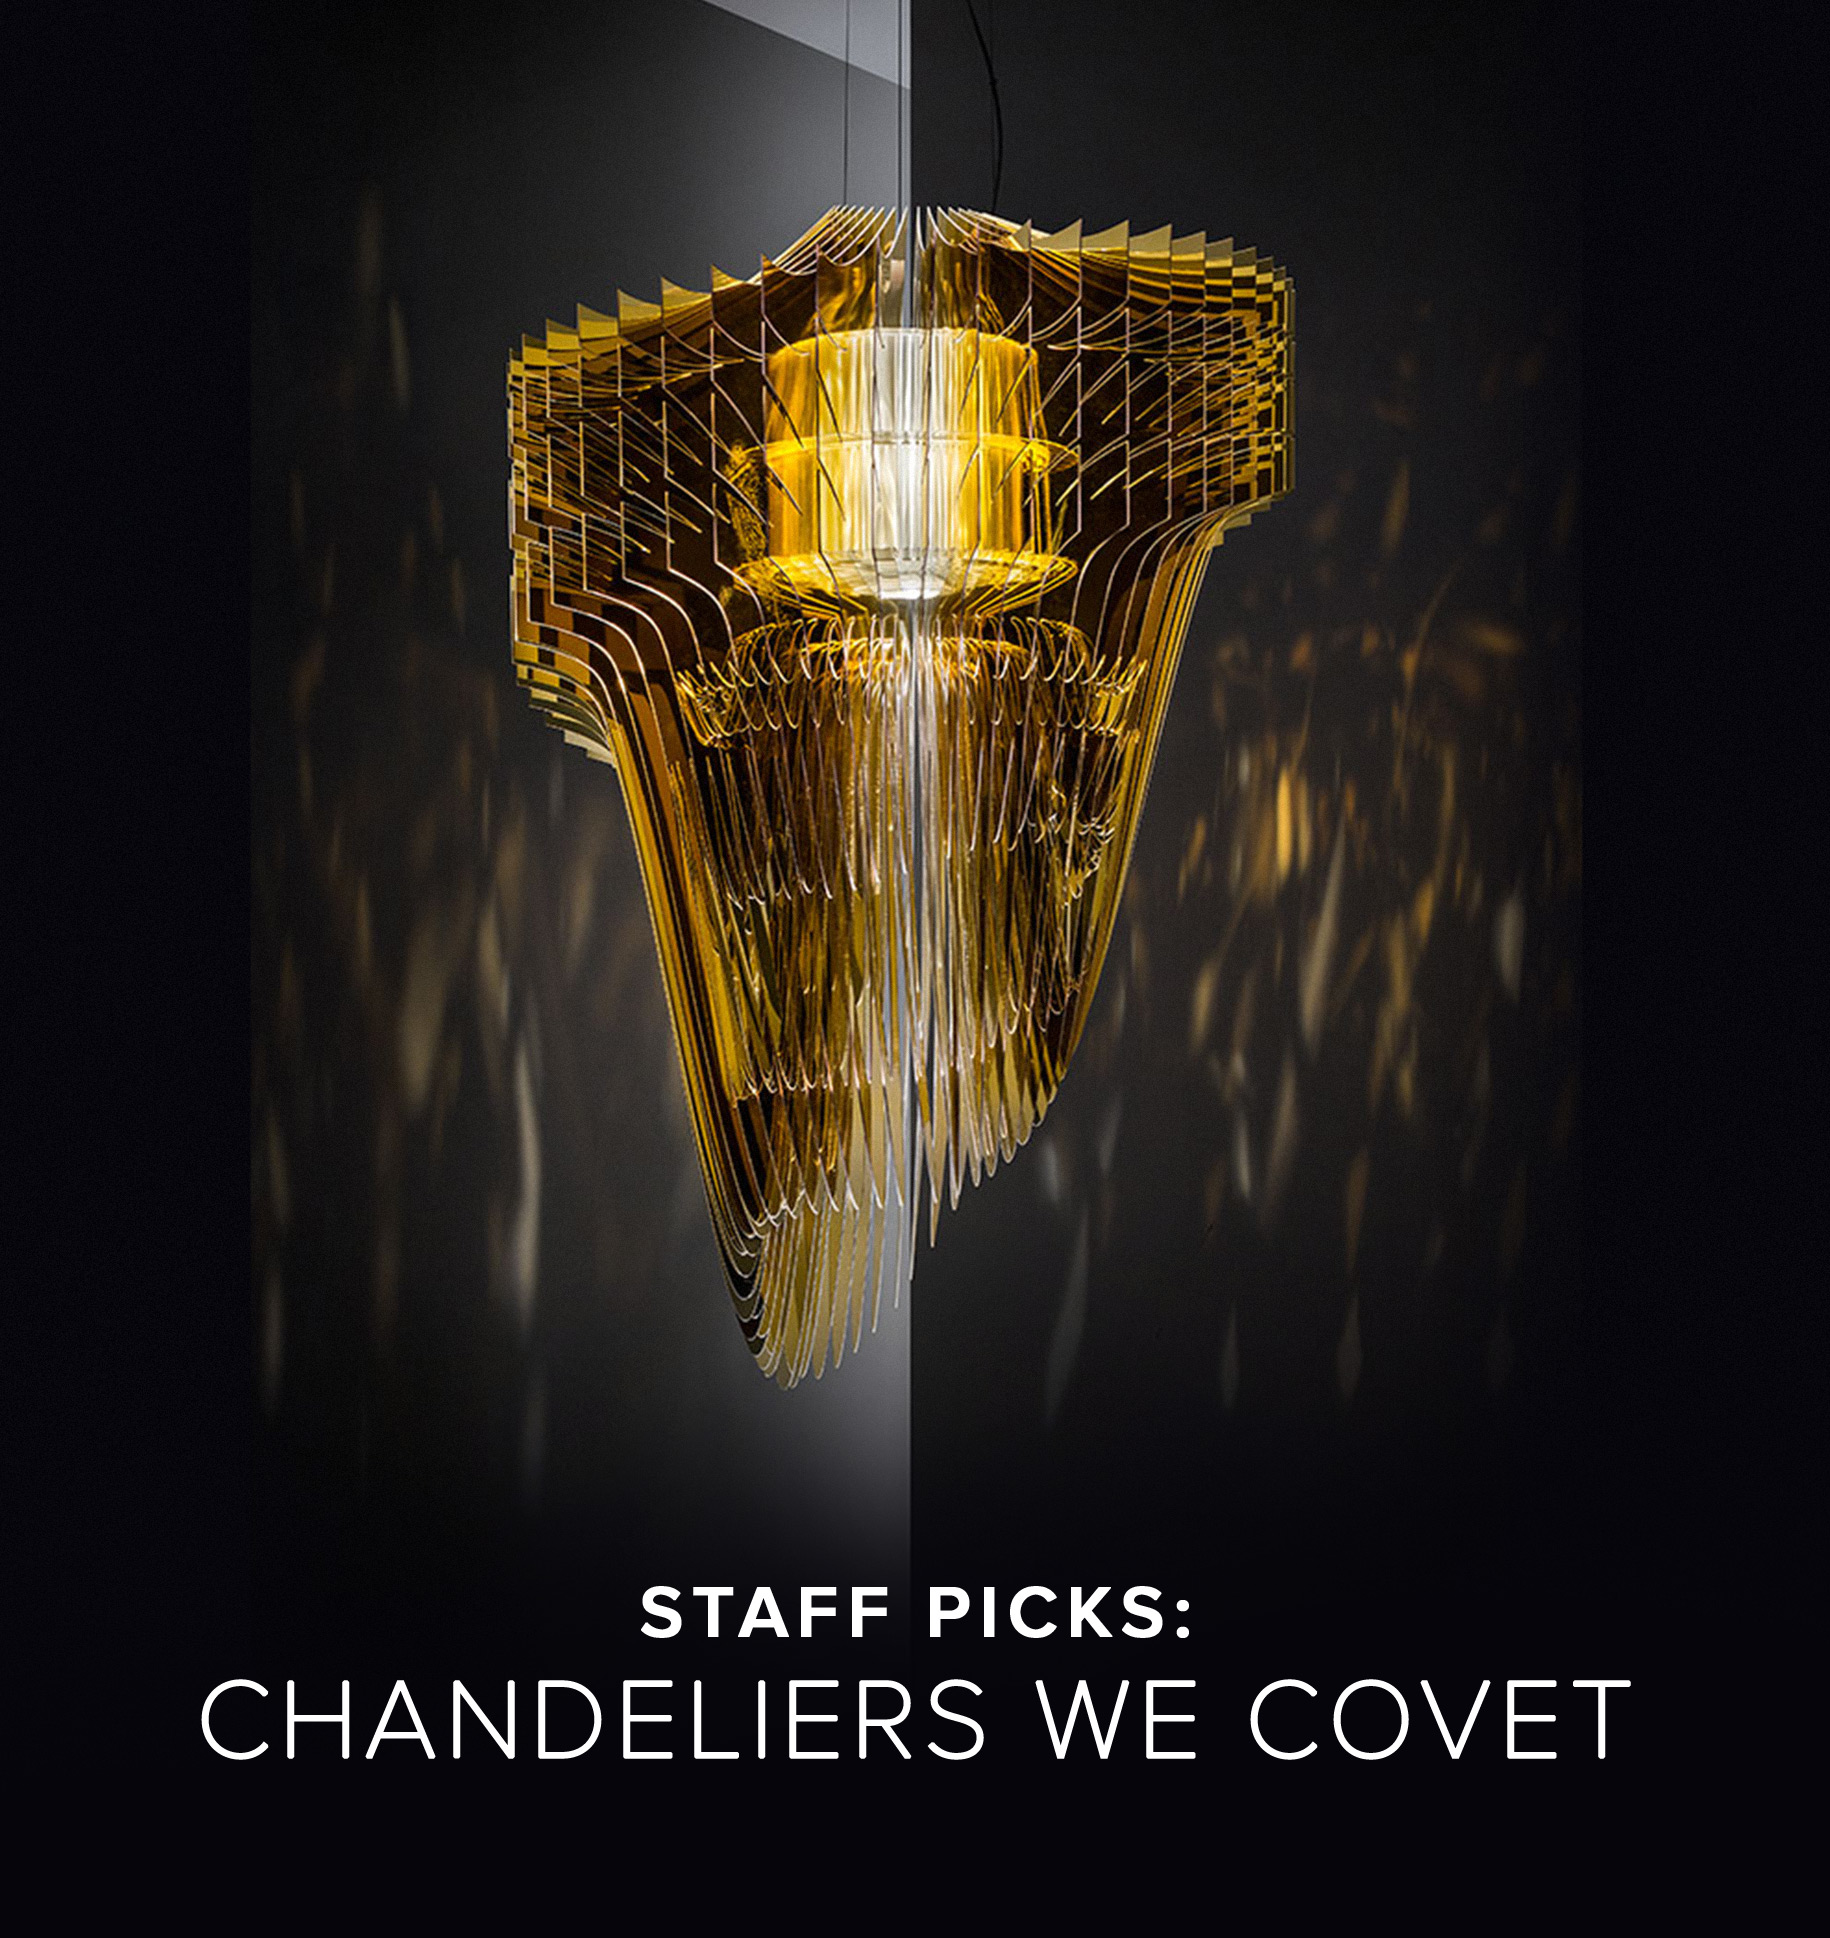 Staff Picks: Chandeliers We Covet